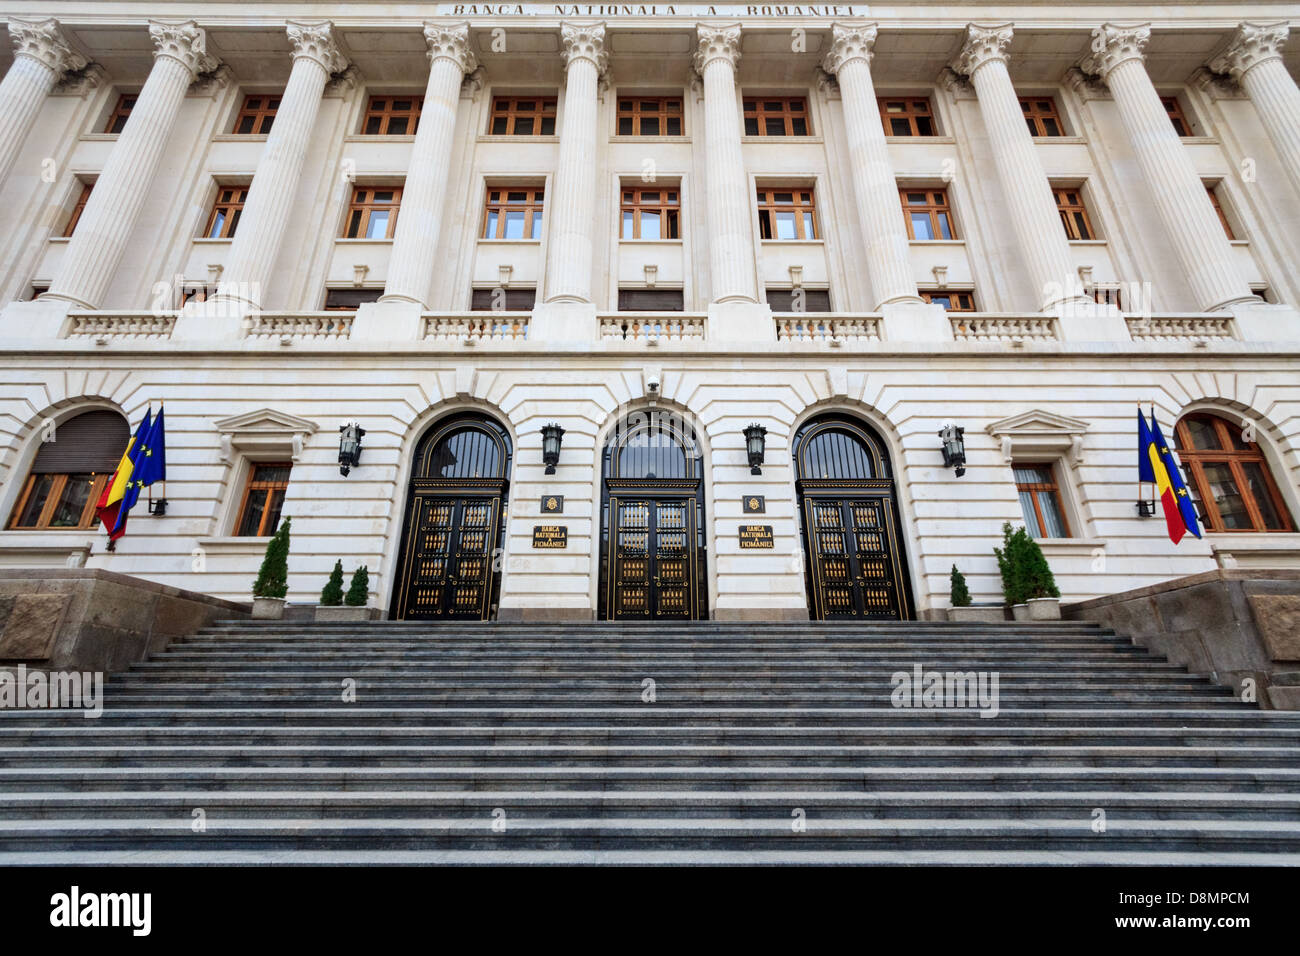 The facade and front of the newly renovated romanian national bank - Stock Image